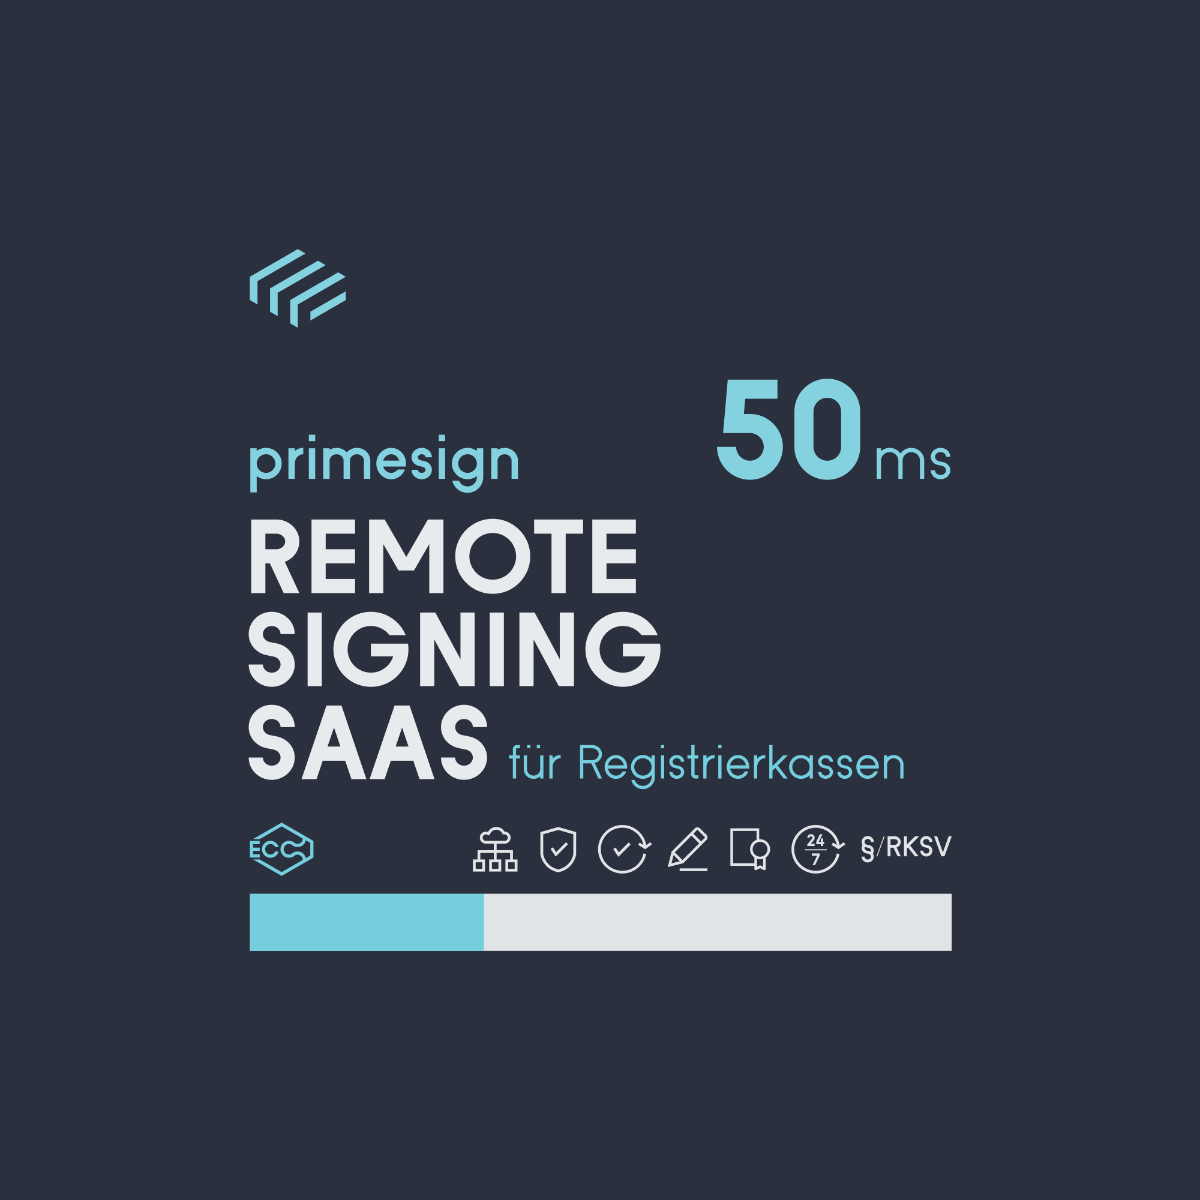 RKSV Remote Signing 50 ms mit 24/7 Support